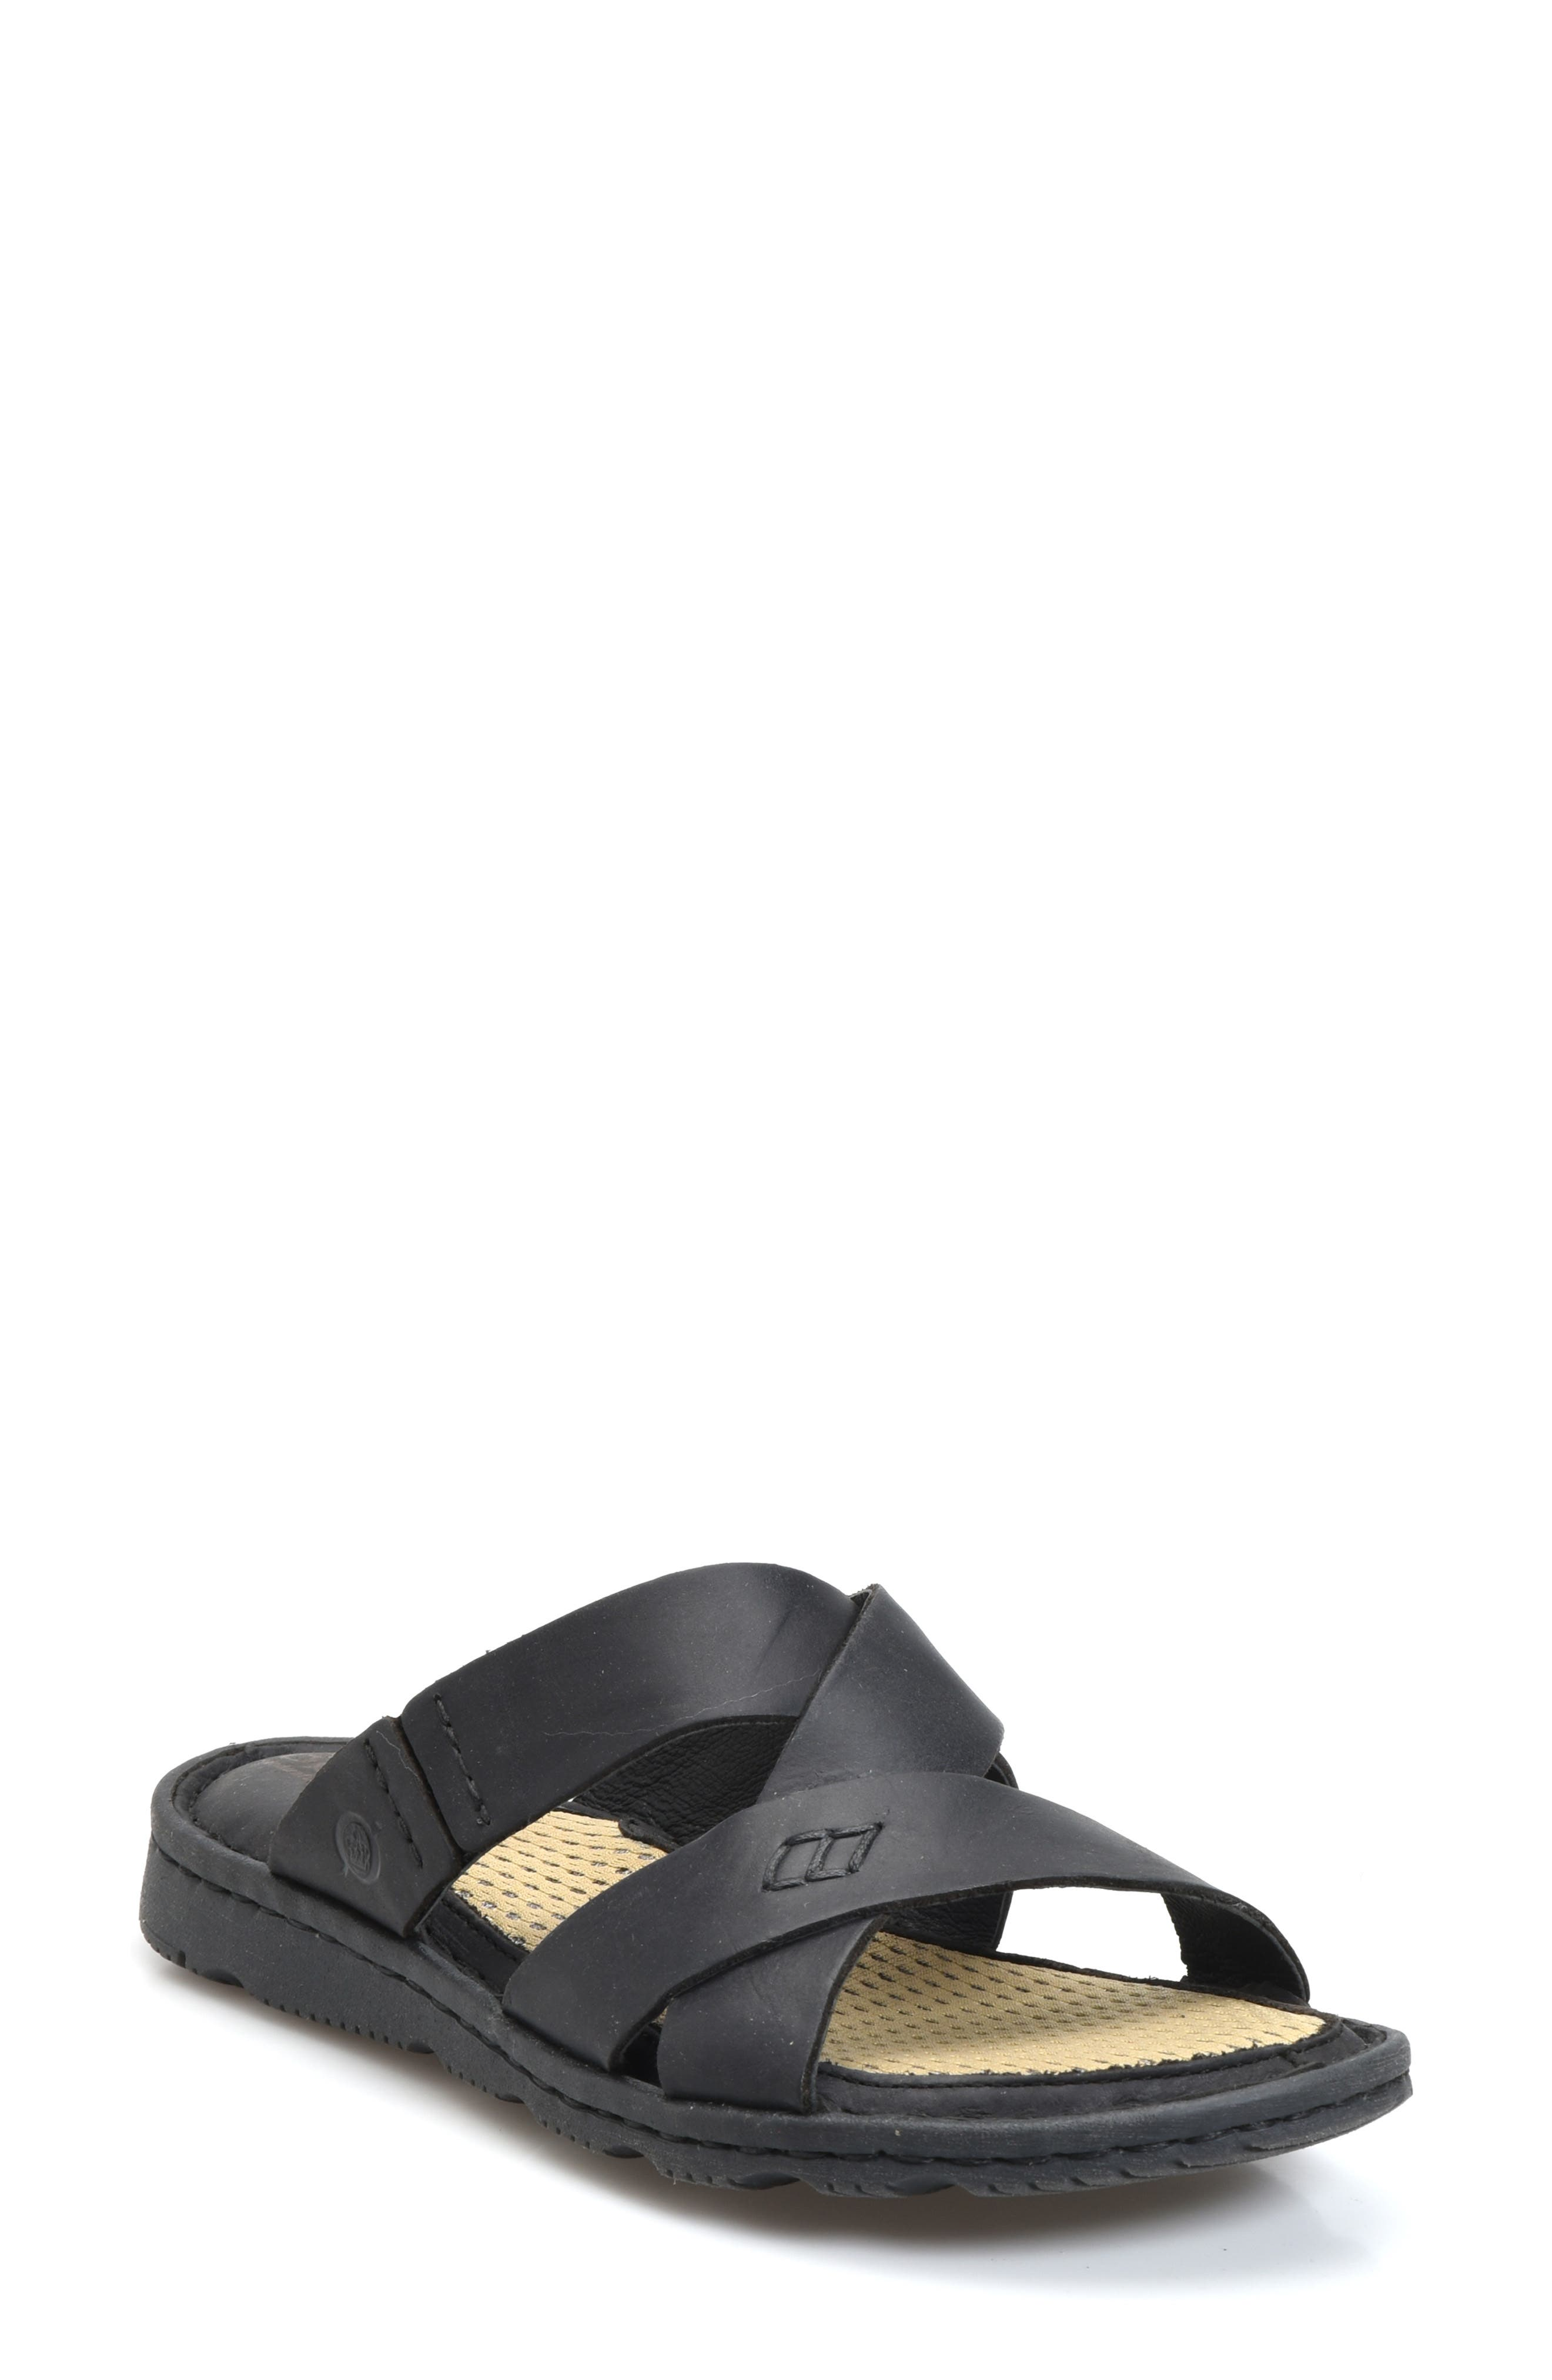 Hayka Asymmetrical Slide Sandal,                             Main thumbnail 1, color,                             BLACK LEATHER